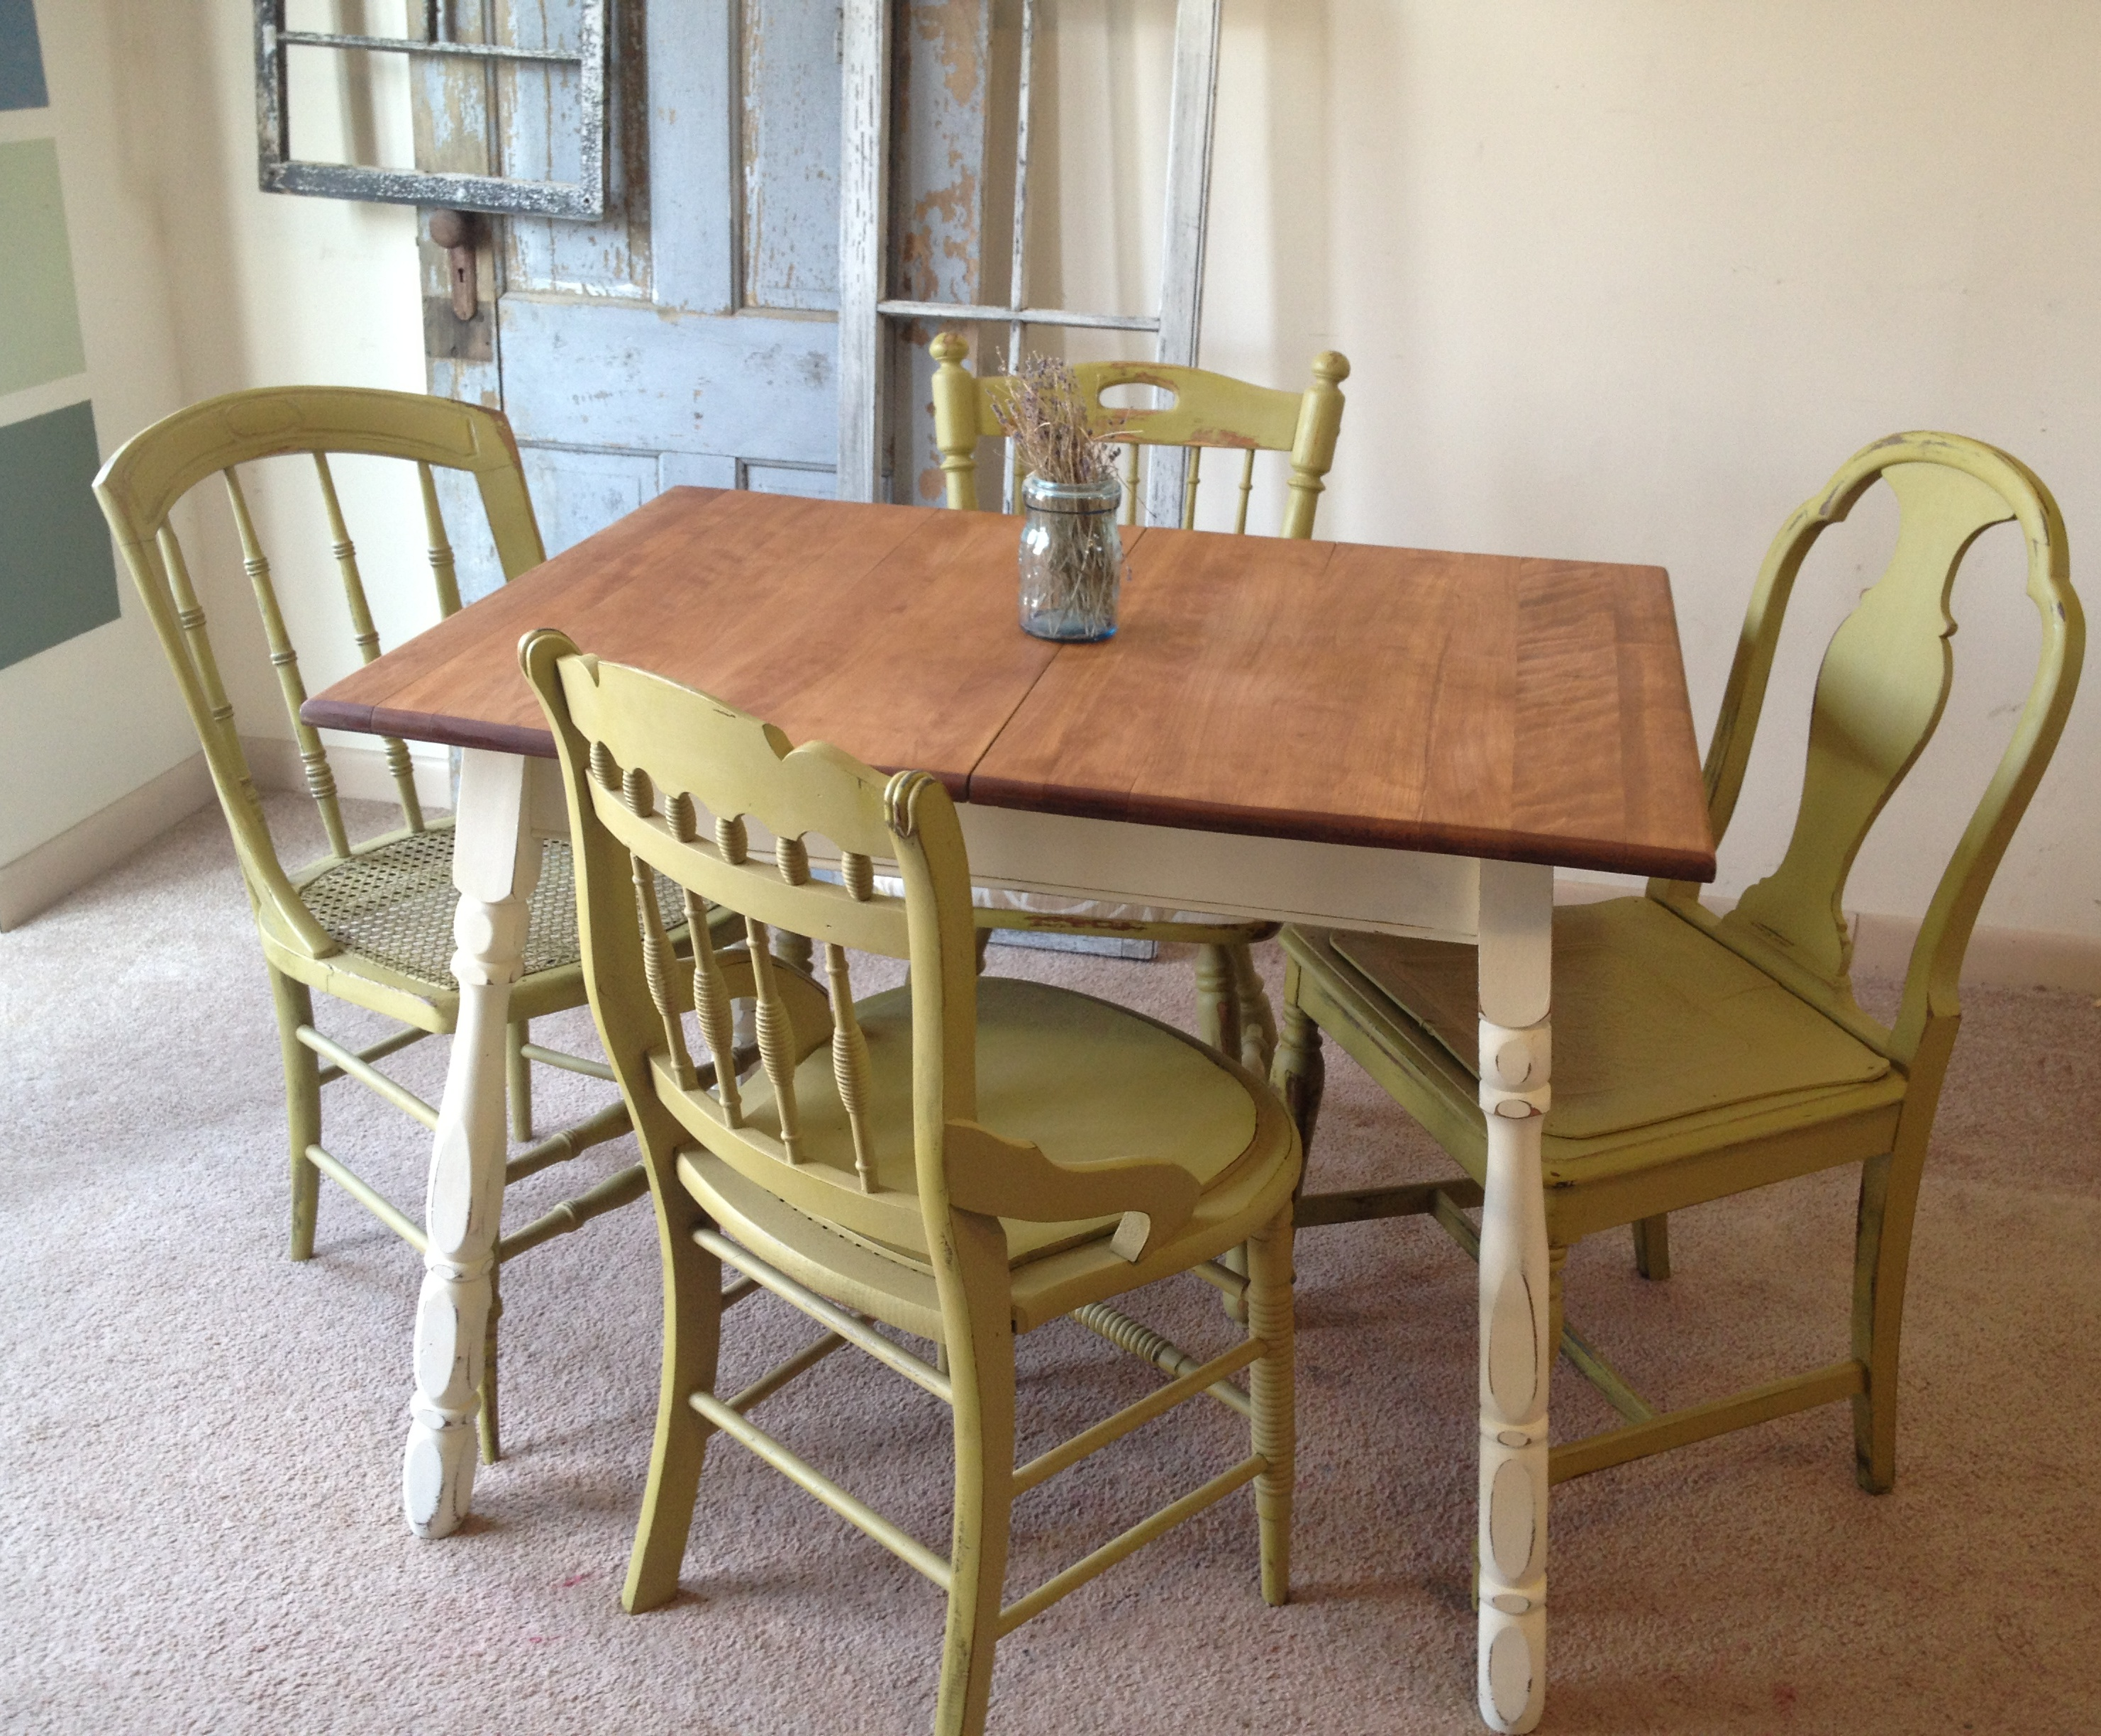 Kitchen table and chairs sets photo - 2